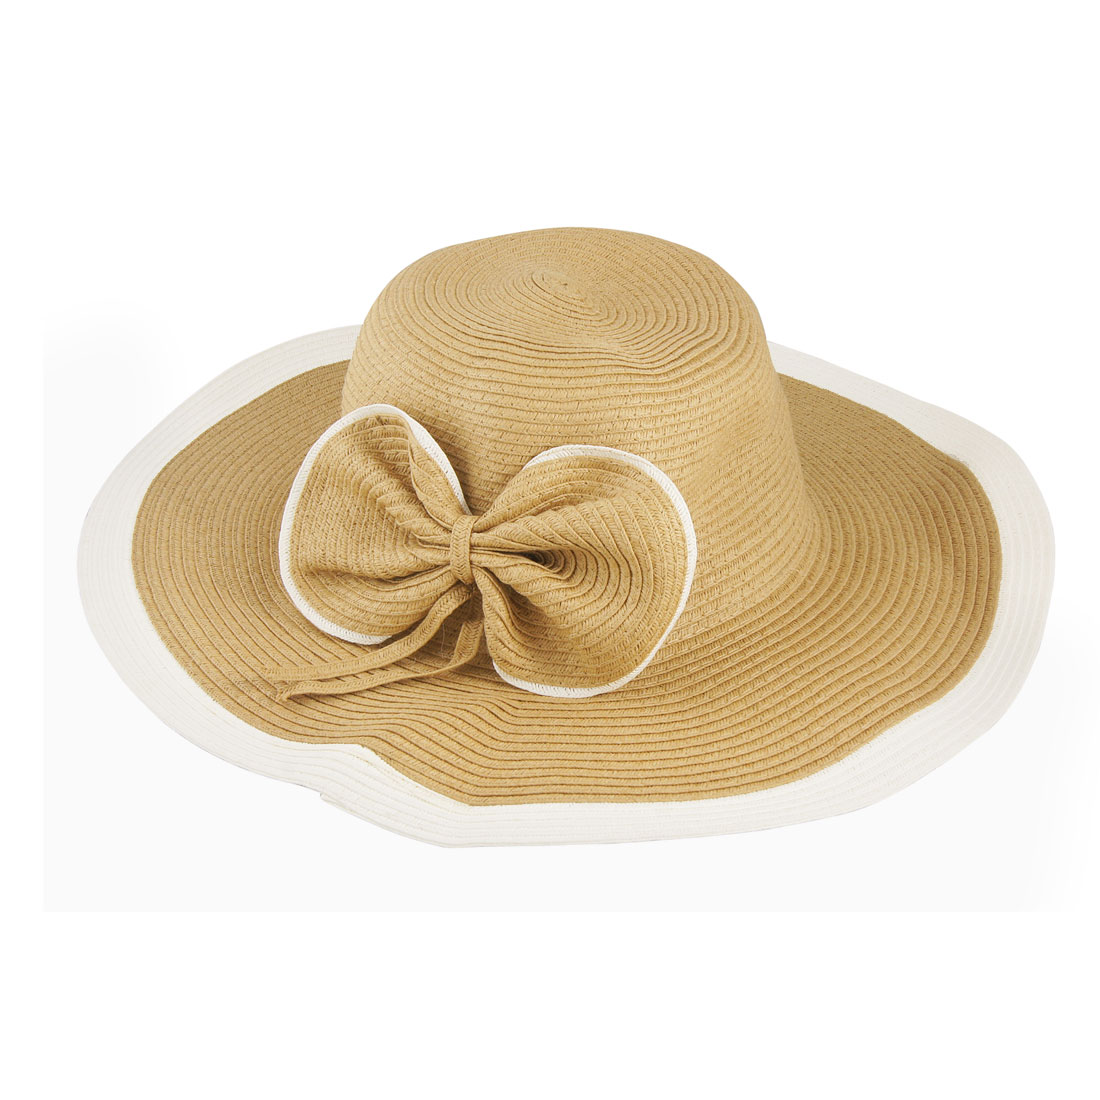 Women Bowtie Decor Wide Brim Straw Floppy Beach Hat Brown White